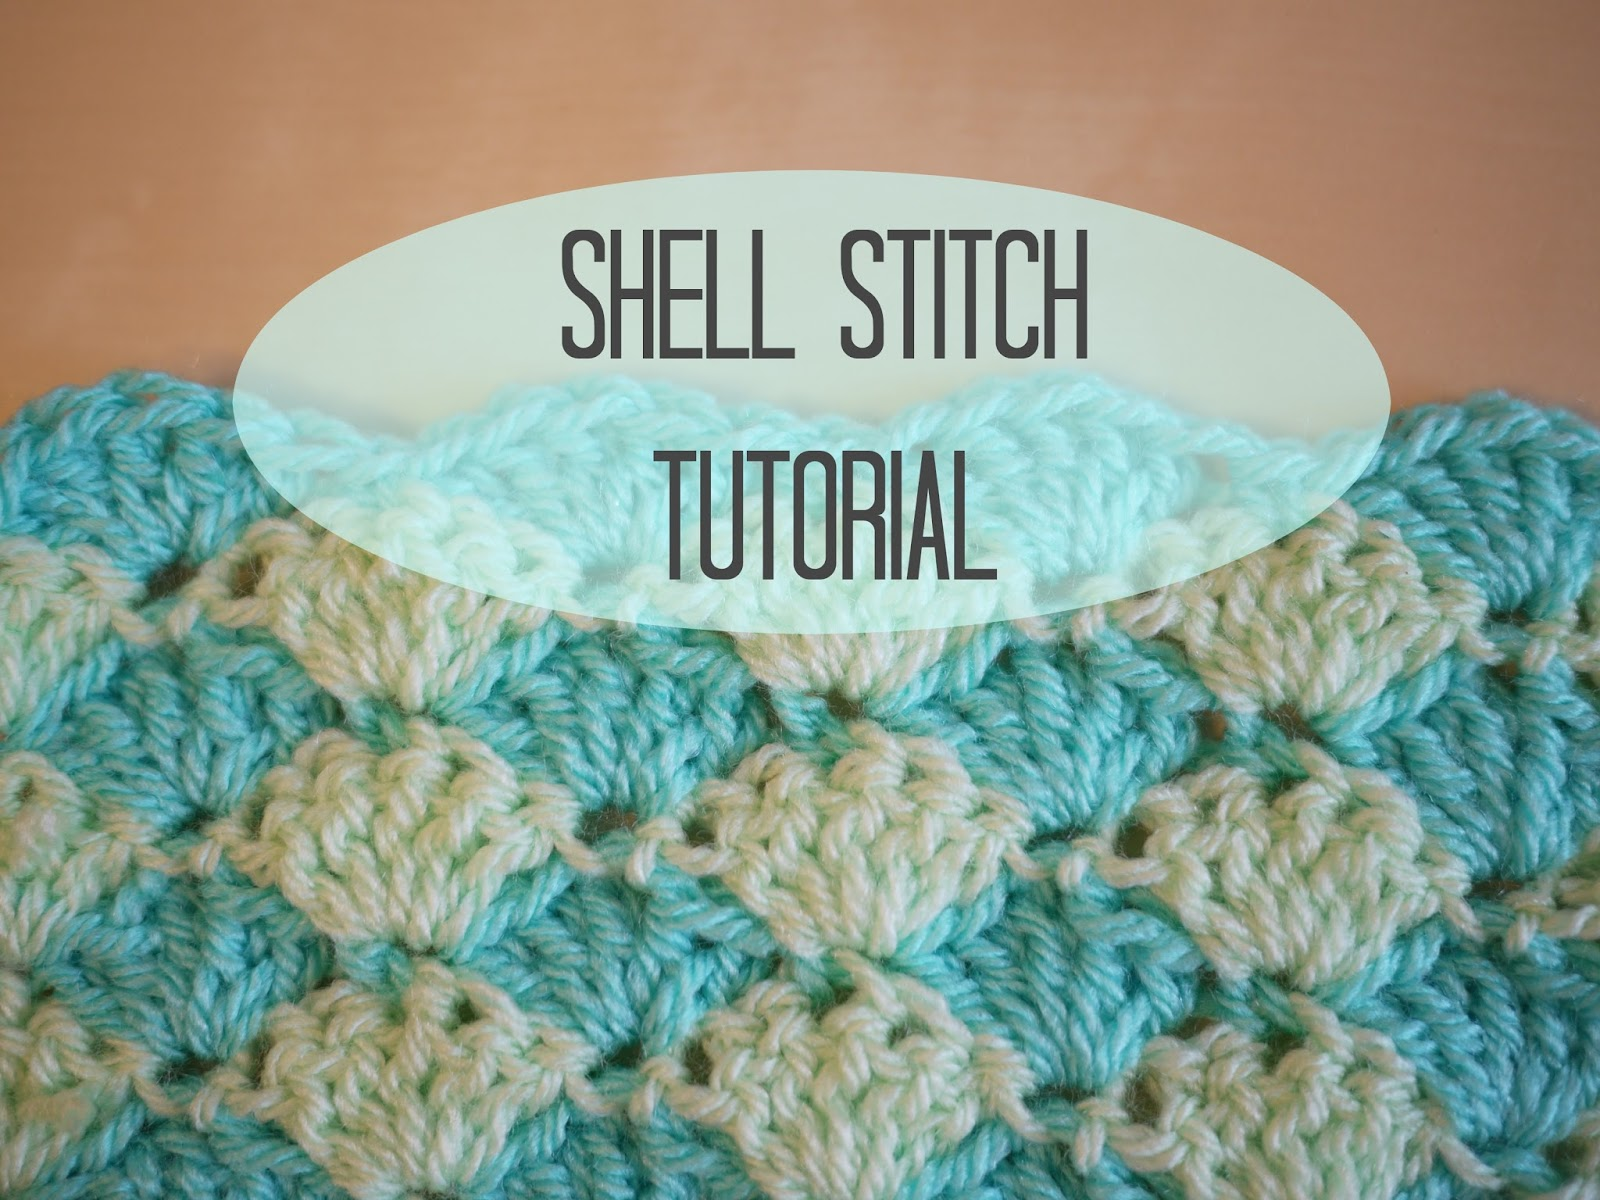 Crochet Stitches Shell Instructions : Crochet shell stitch tutorial - Bella Coco by Sarah-Jayne